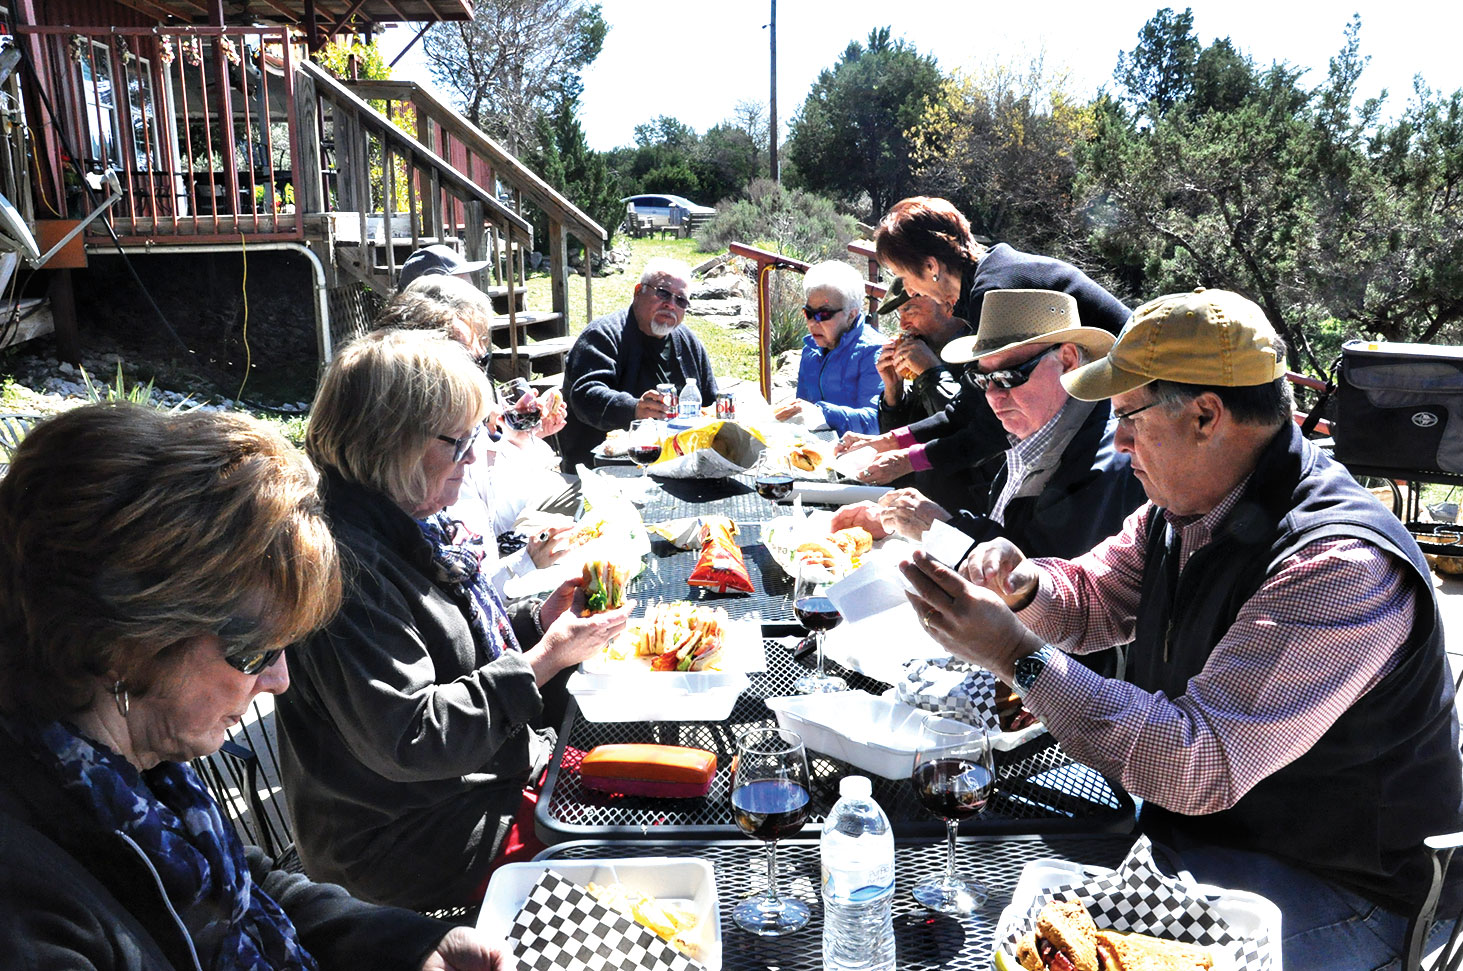 Meritage Wine Group picnic spread outside Bluff Dale Winery